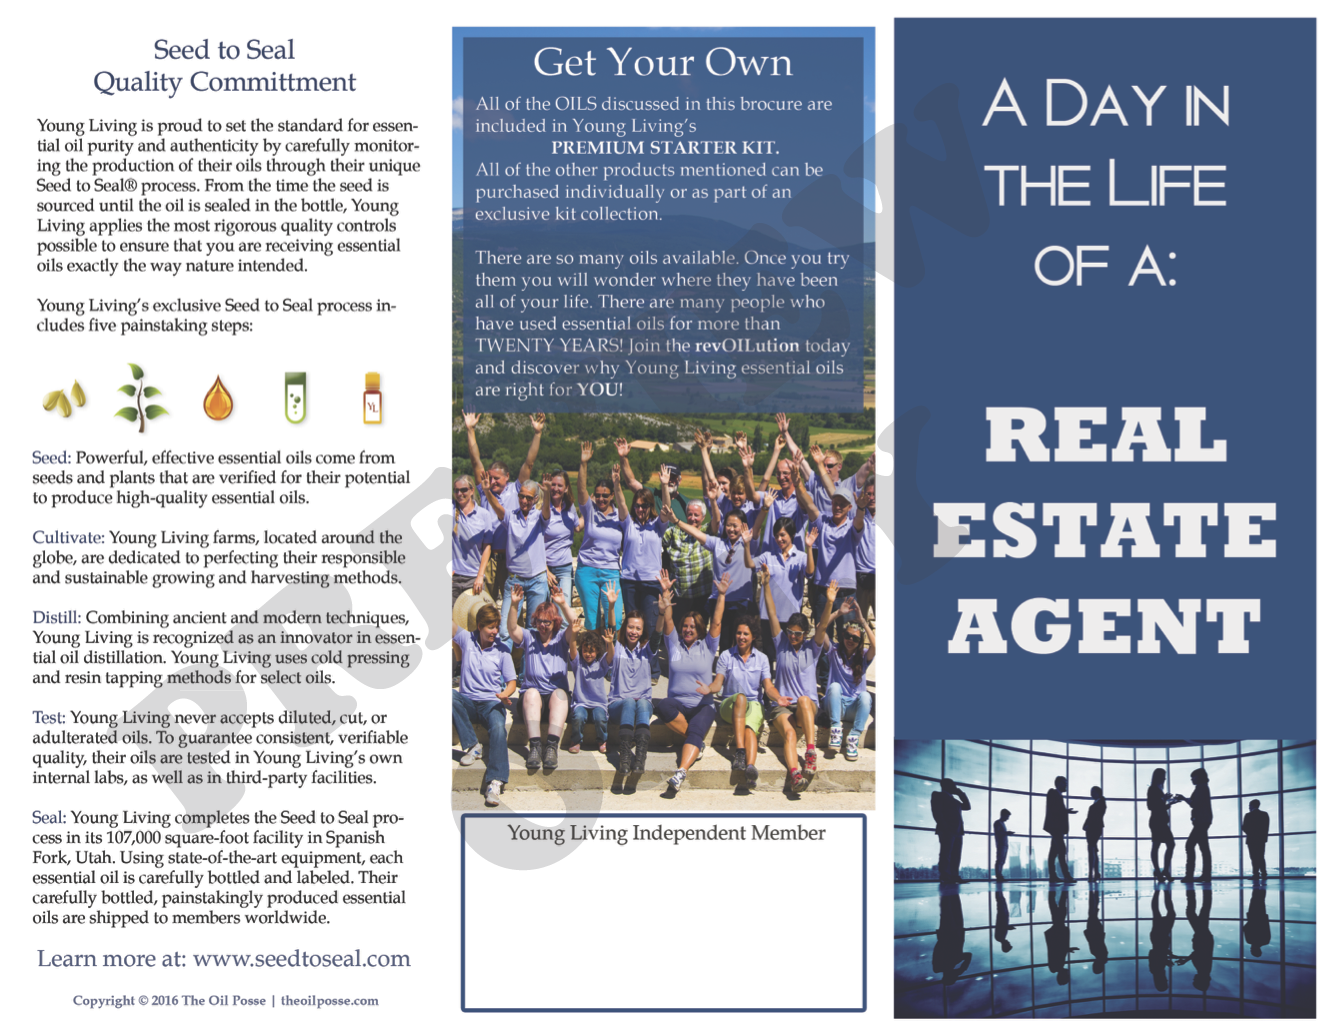 Brochure: Real Estate Agent, A Day in the Life | The Oil Posse